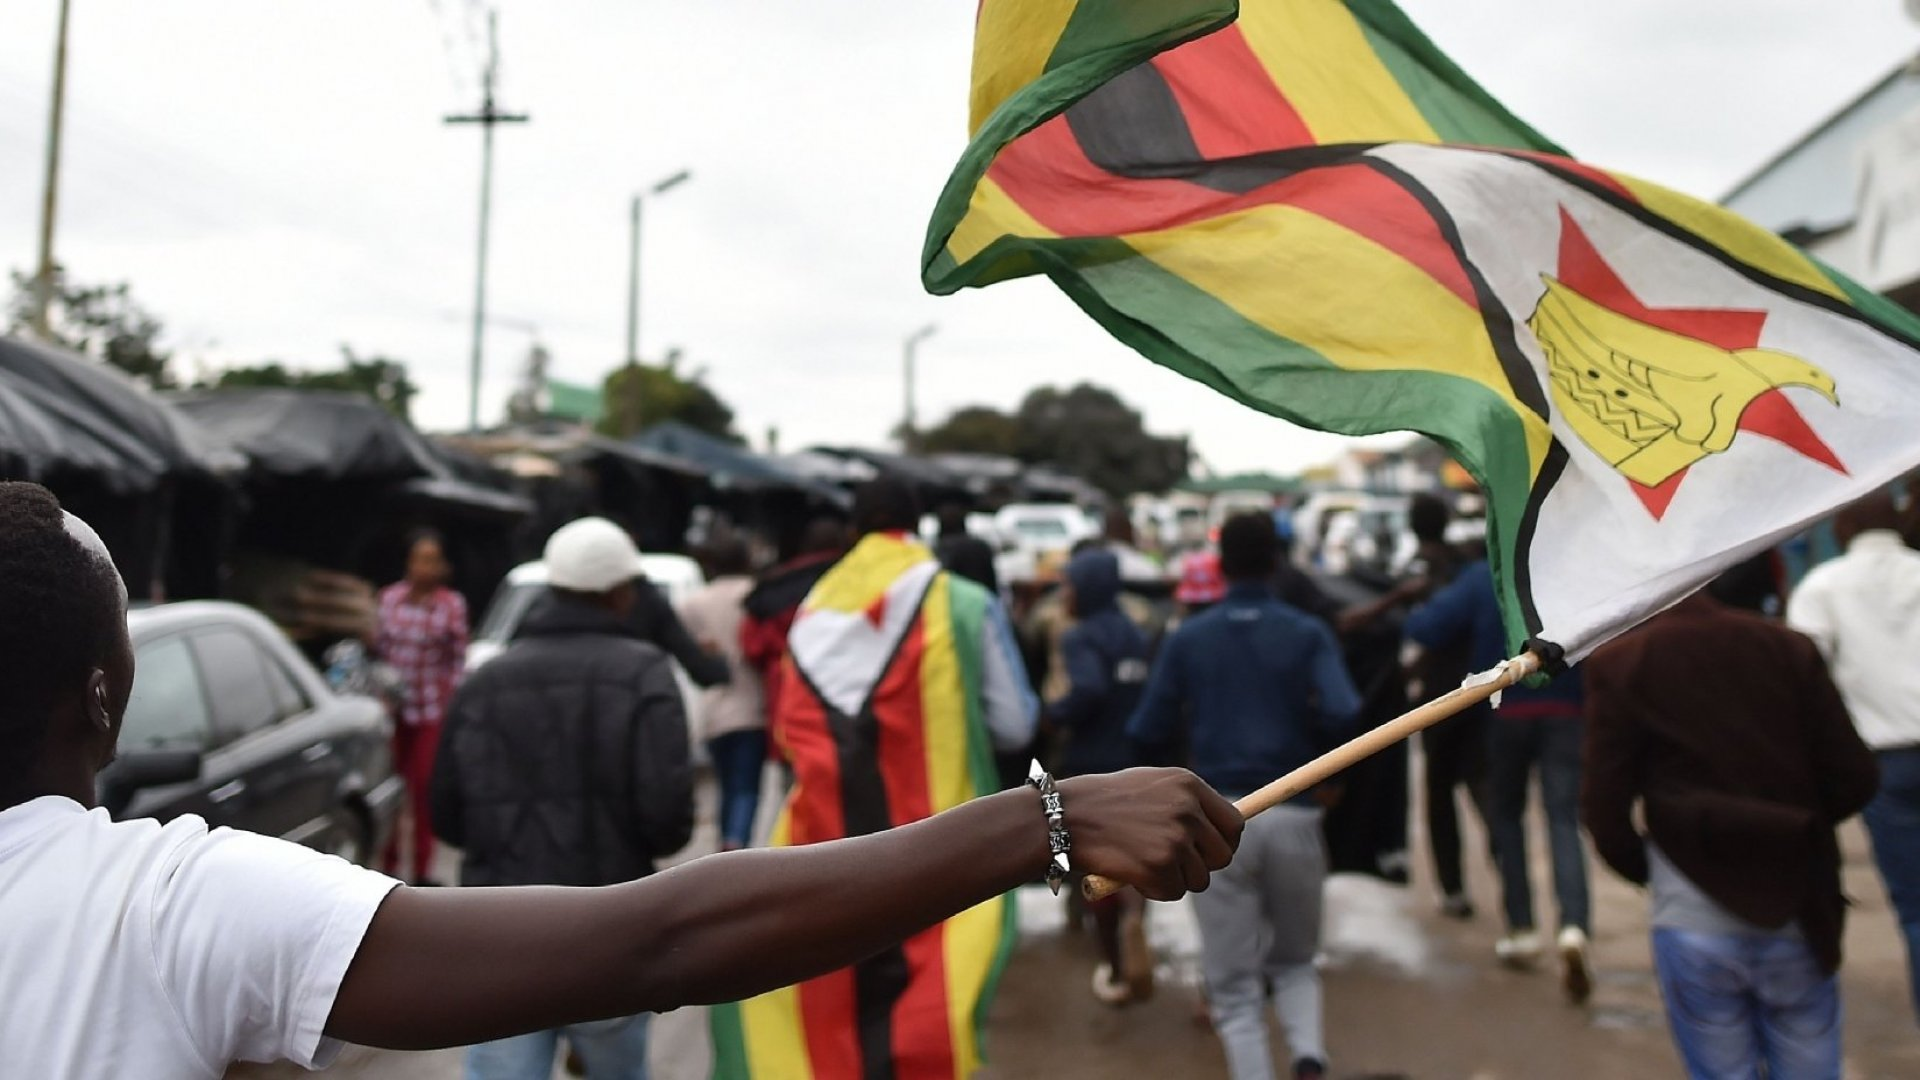 A man waves a Zimbabwean national flag during a demonstration demanding the resignation of Zimbabwe's president on November 18, 2017, in Harare.